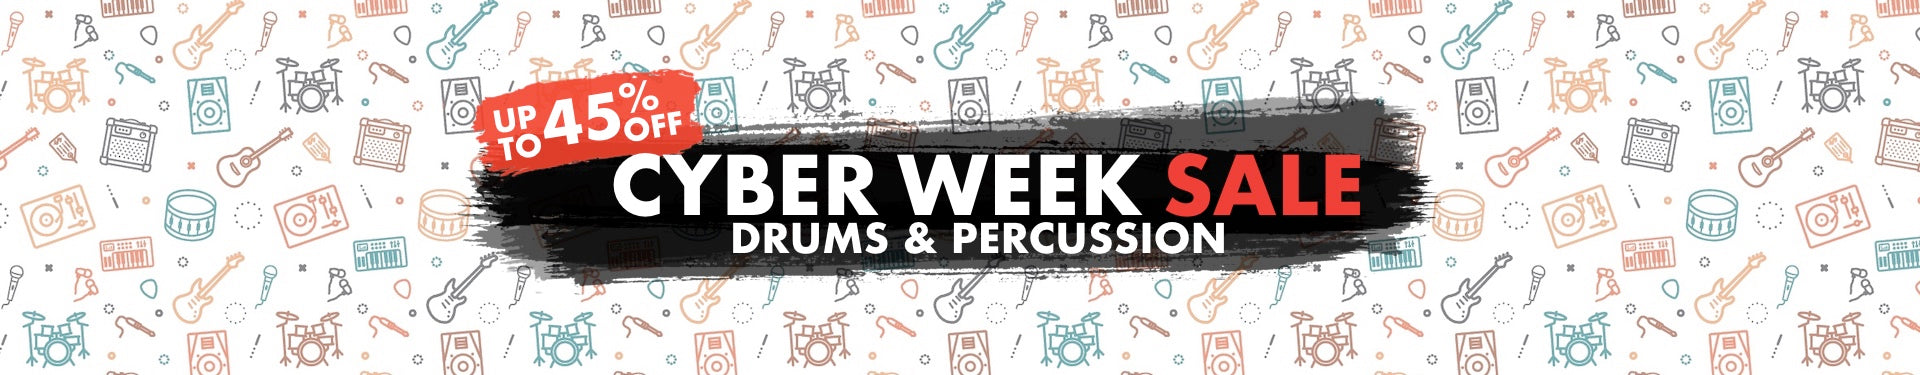 Cyber Week Drums & Percussion